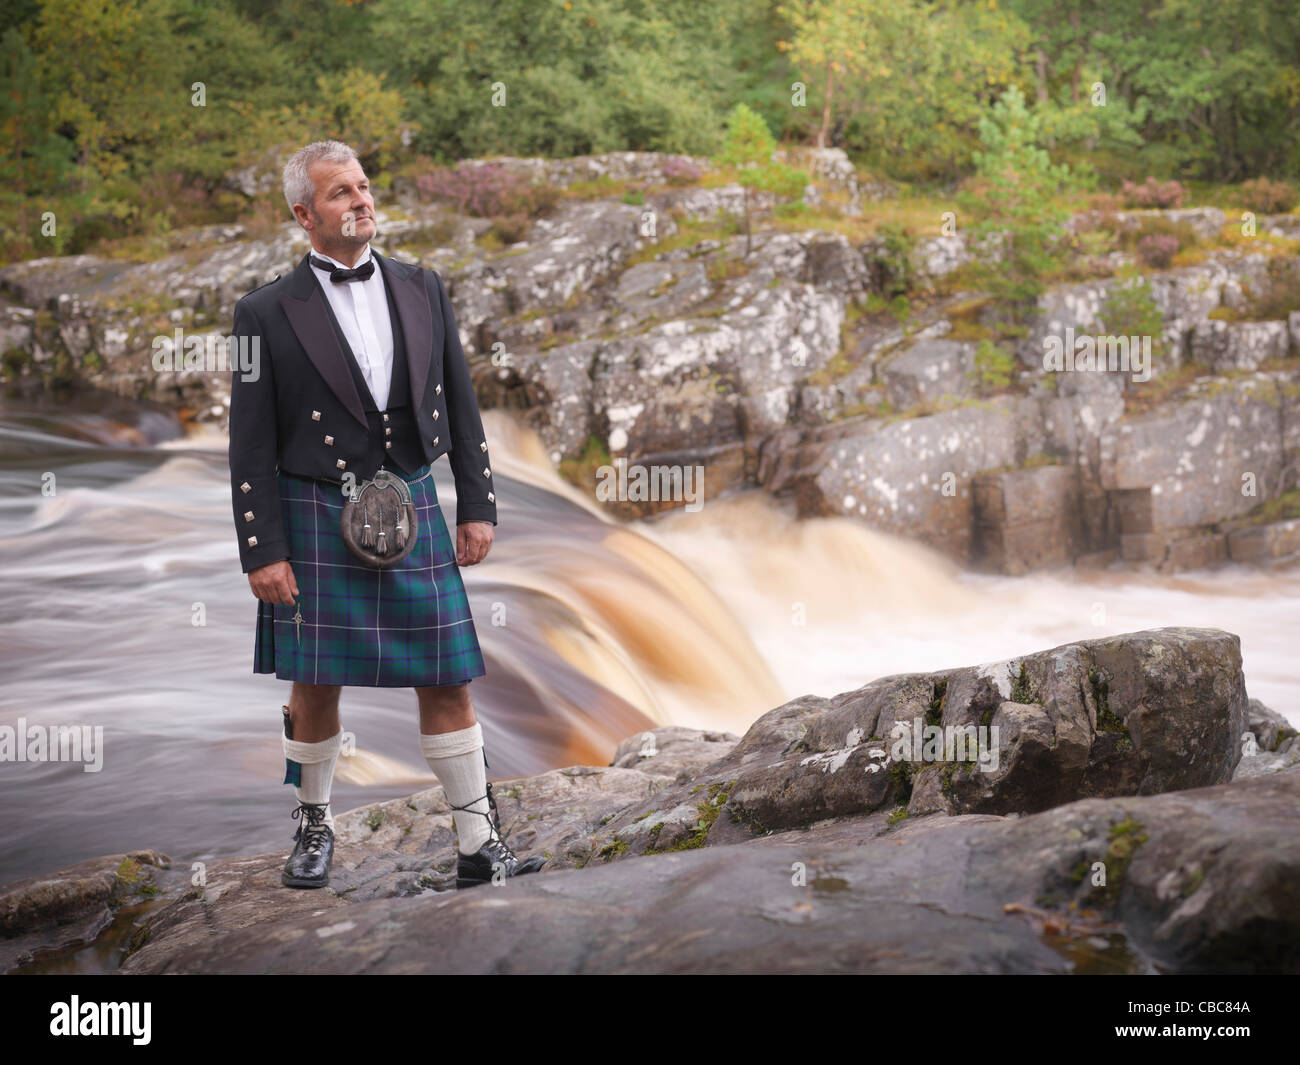 Time lapse view of man in kilt by river - Stock Image